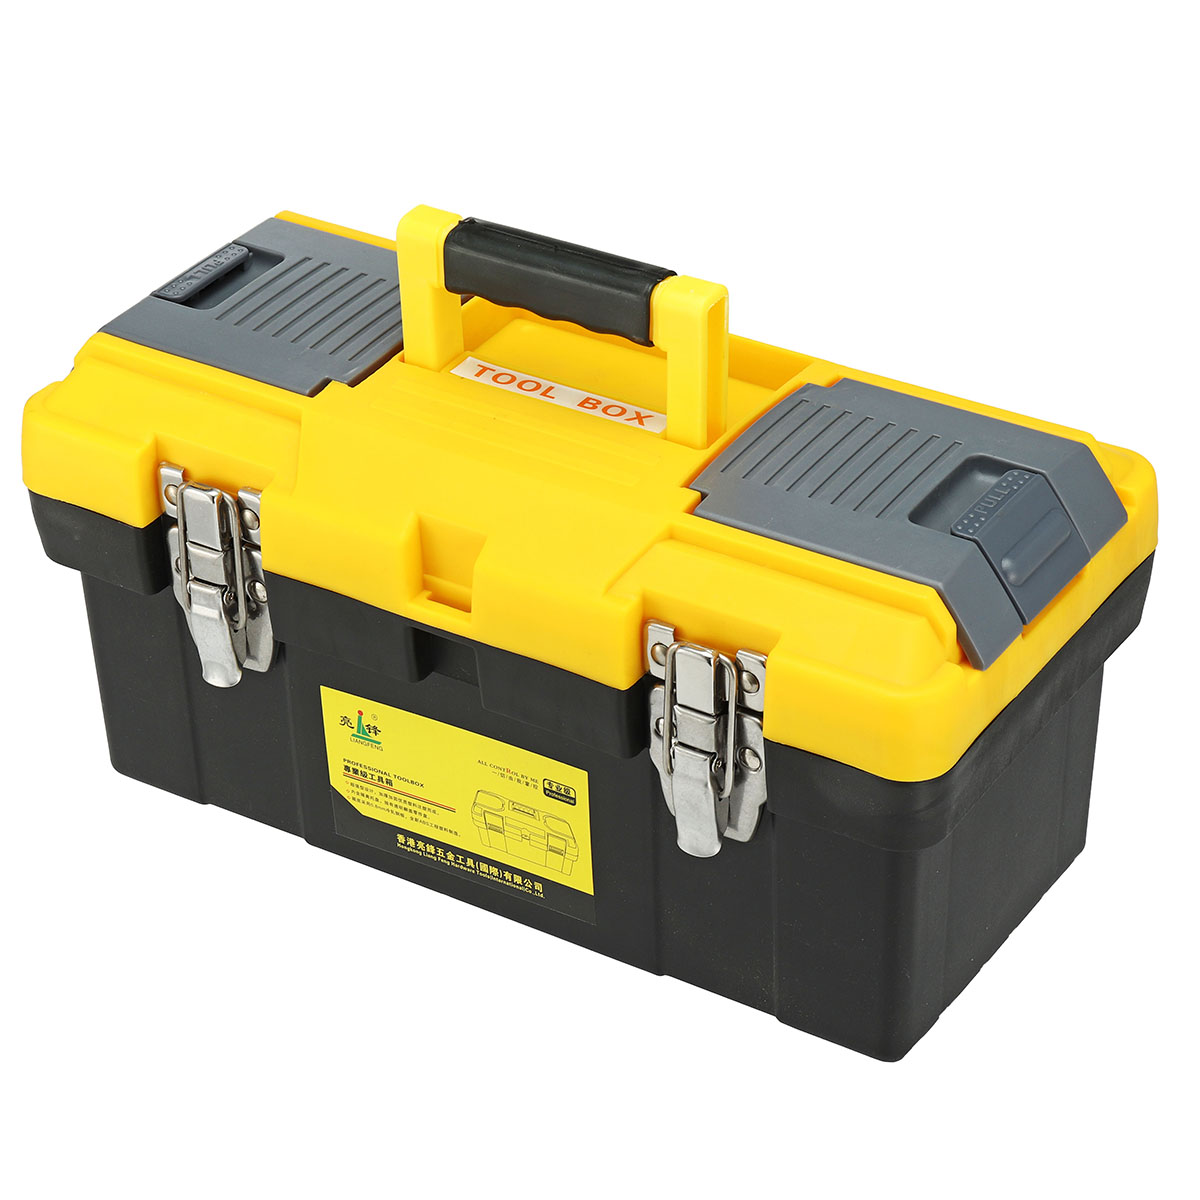 Organizer Toolbox-Tool-Case Compartment-Kits Handle Chest-Storage Plastic-Tools Container